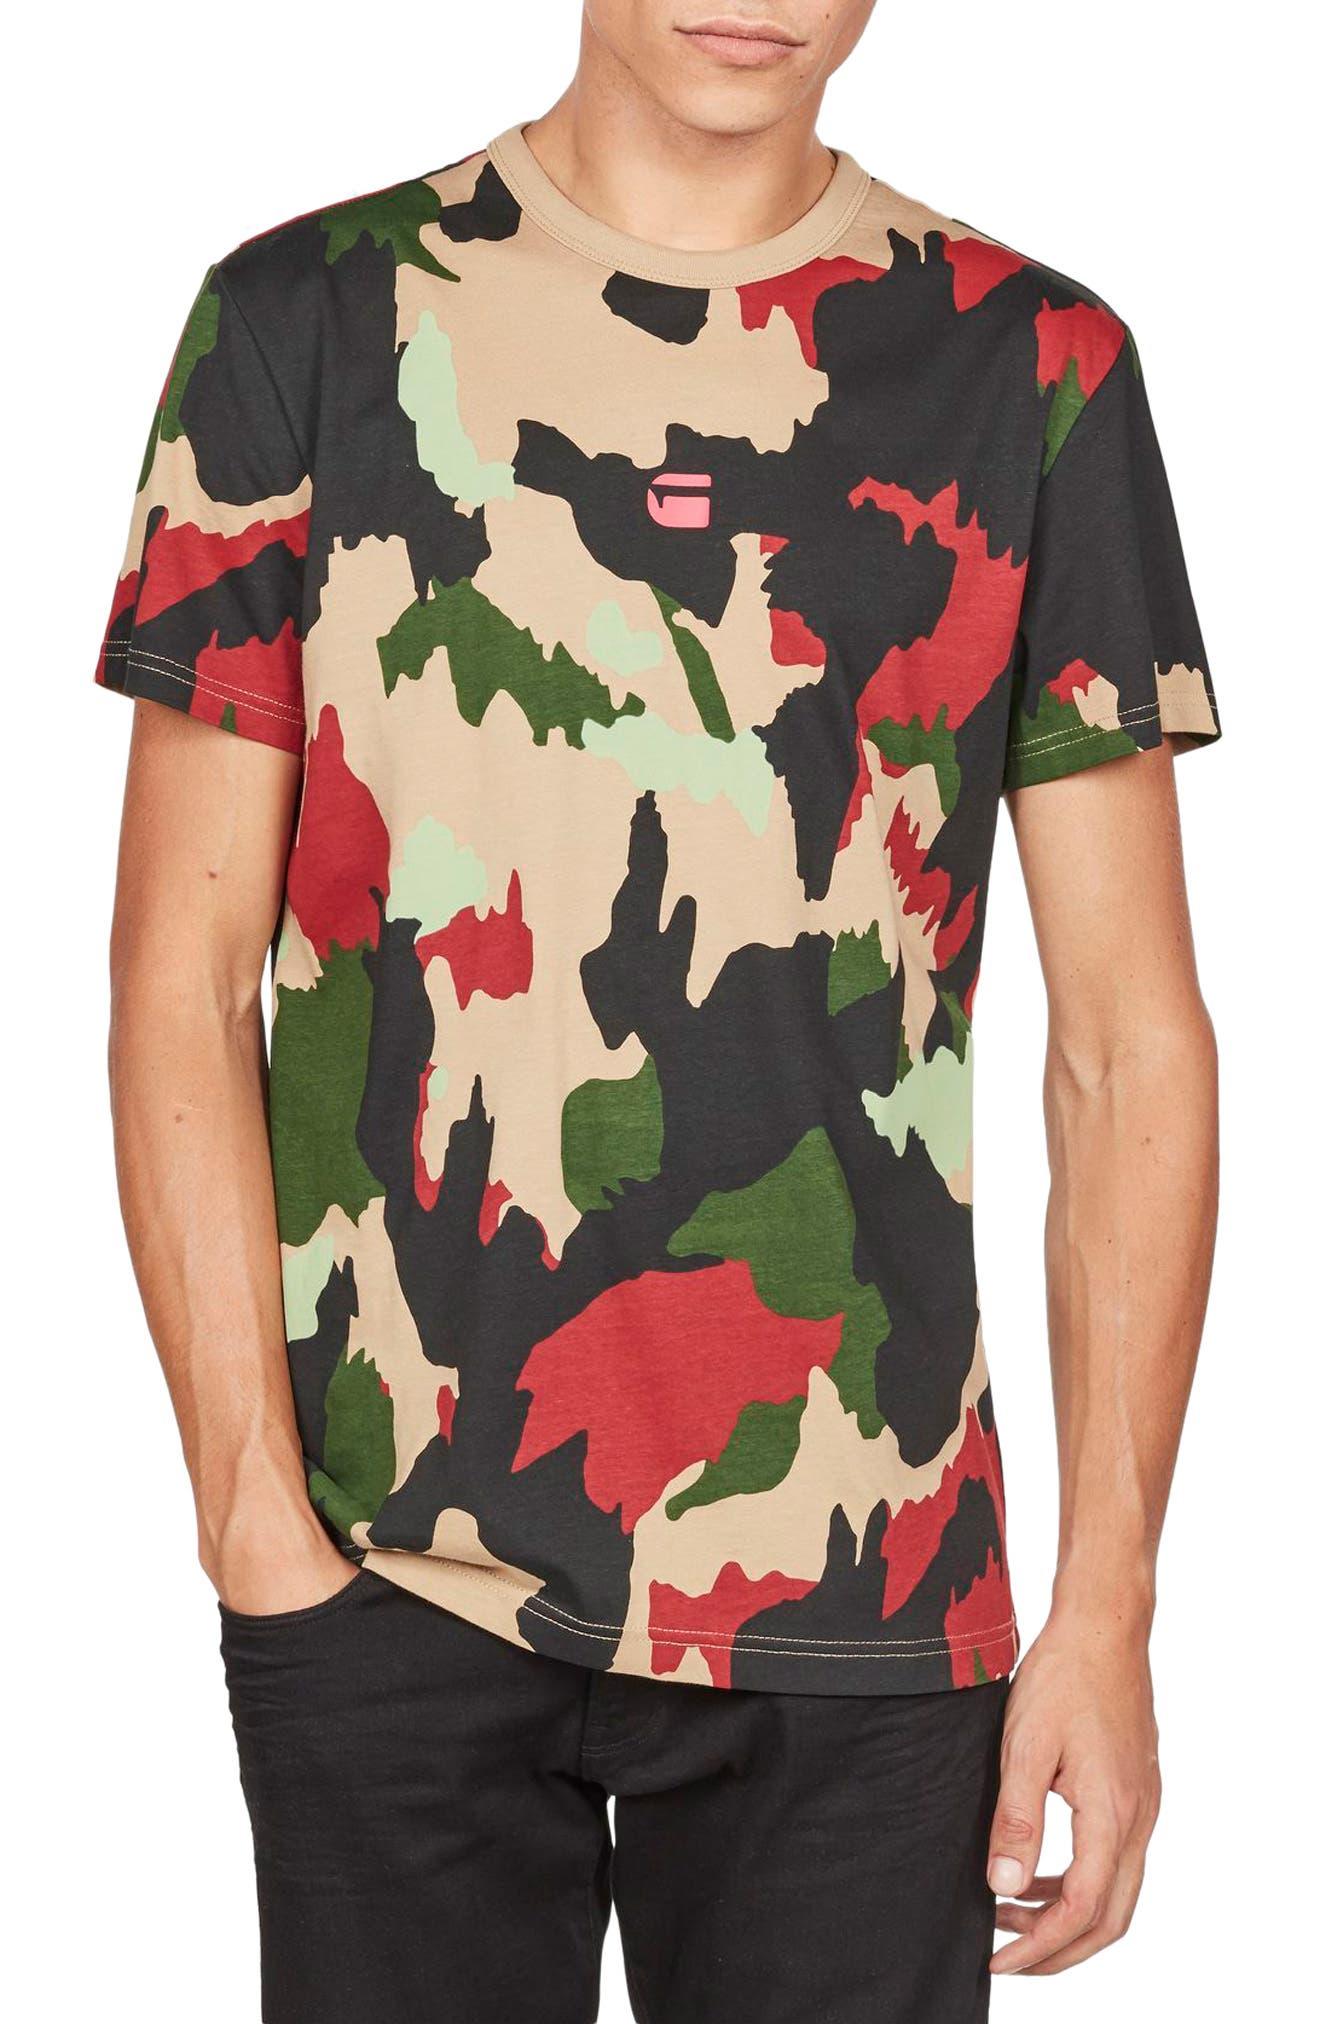 G-Star Raw Alpenflage Camo T-Shirt